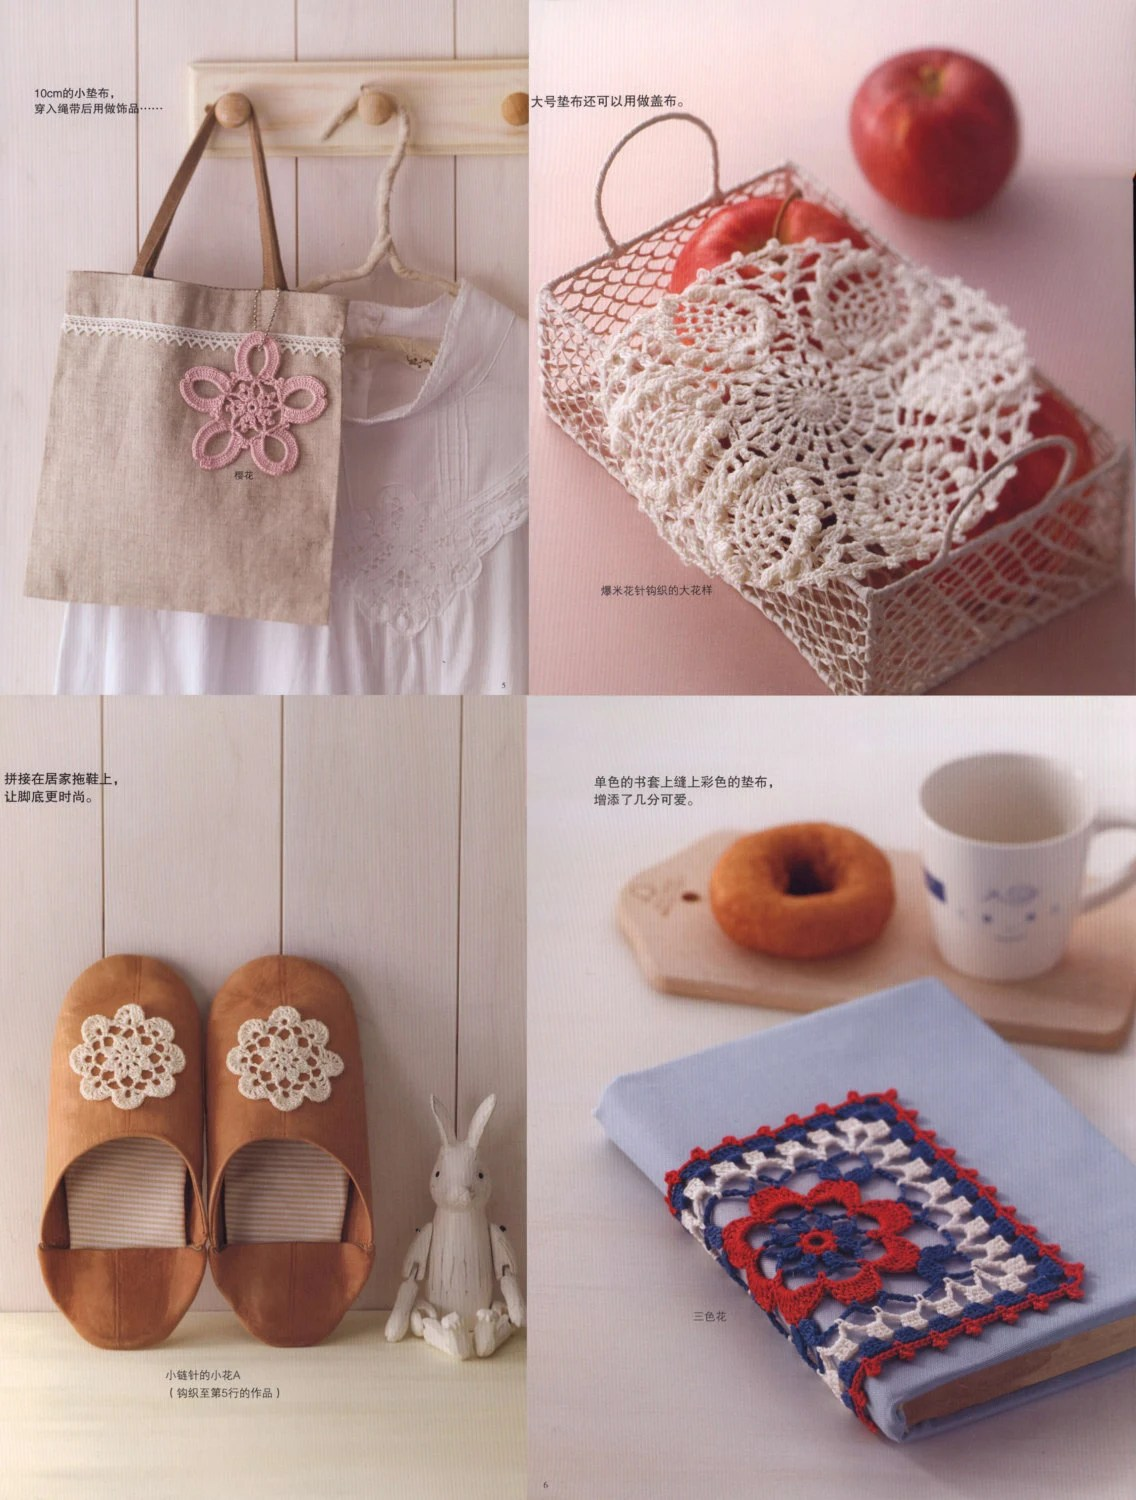 crochet doily patterns with diagram cat6 patch panel wiring flower japanese book pdf etsy image 0